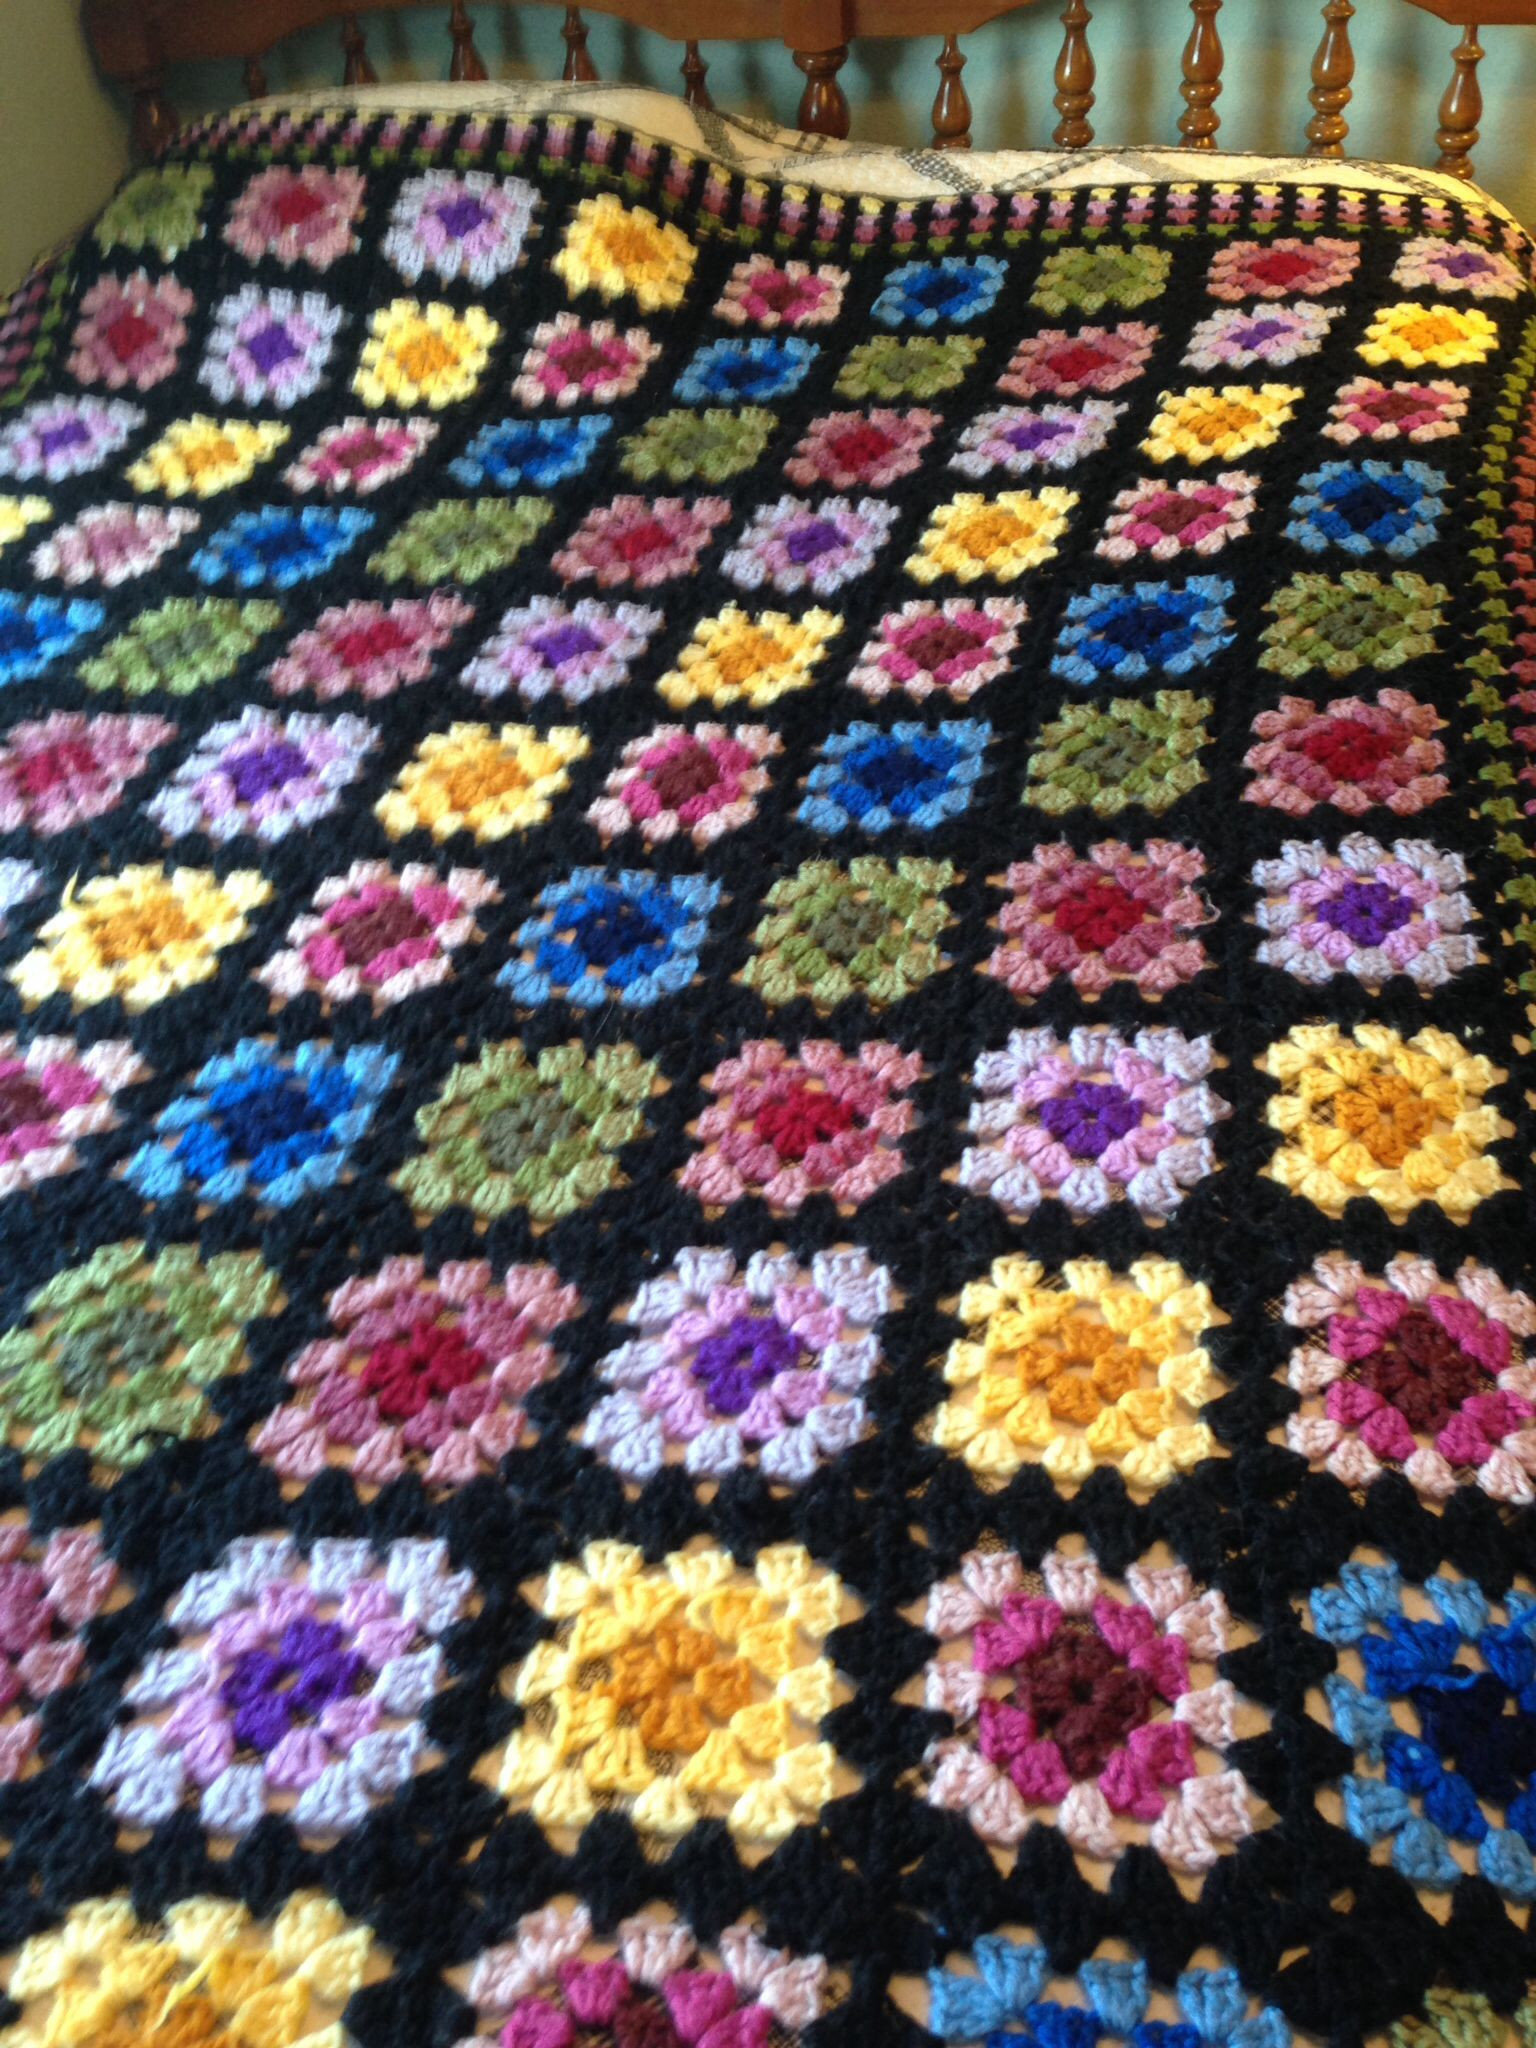 Granny Square Afghan Beautiful Granny Square Afghan Crochet Afghans Of Adorable 50 Pics Granny Square Afghan